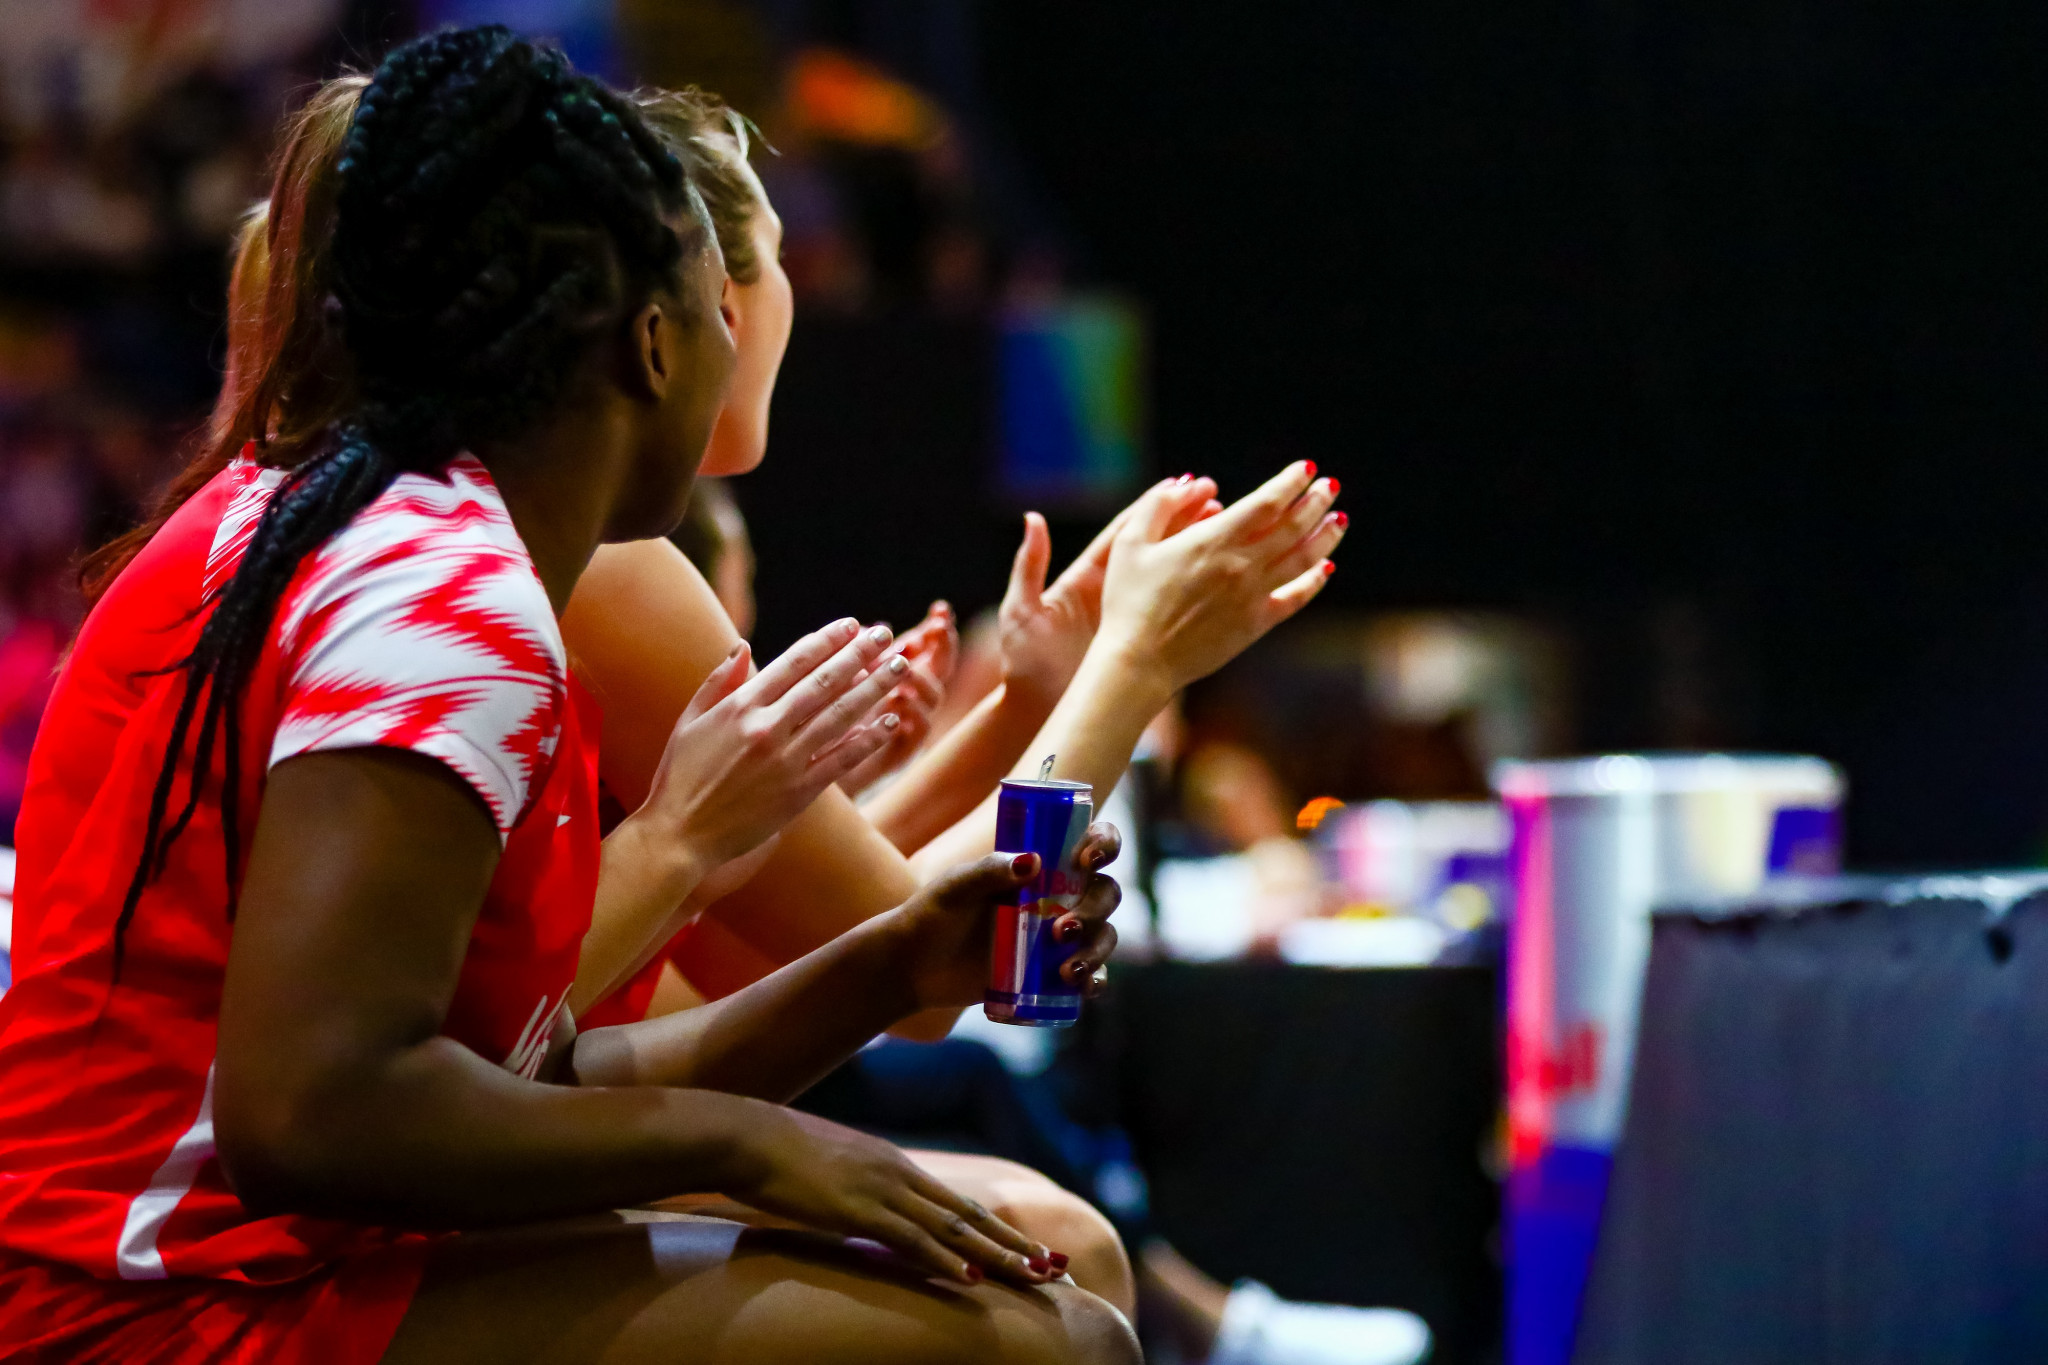 England Netball has extended its partnership with Red Bull until 2023 ©England Netball